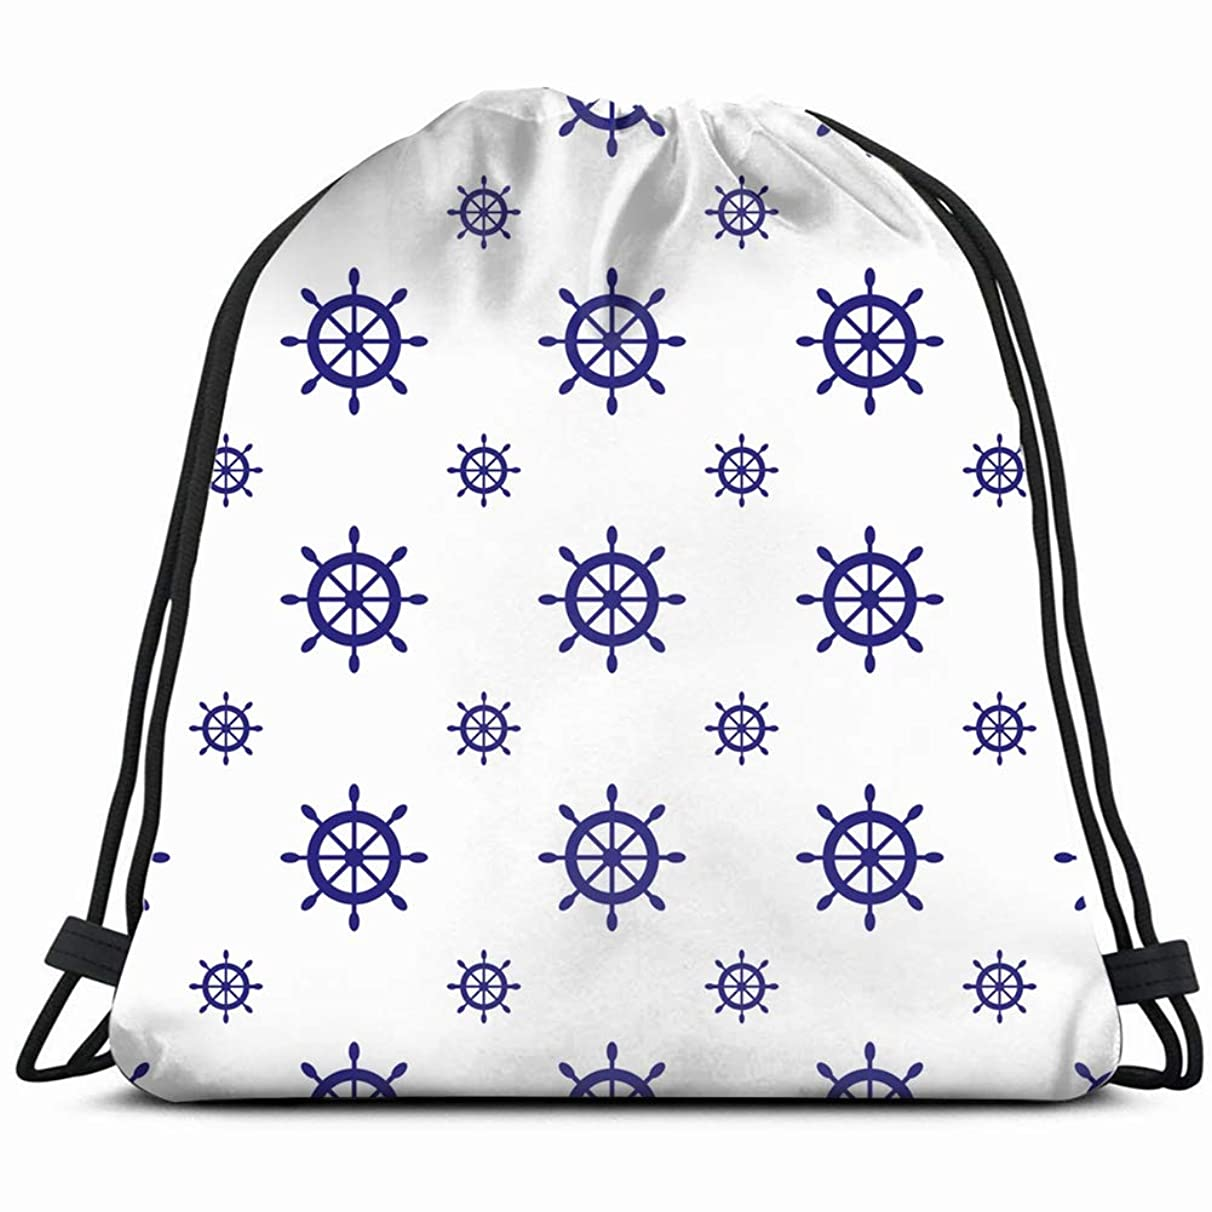 nautical ship wheels design anchor Drawstring Backpack Gym Sack Lightweight Bag Water Resistant Gym Backpack for Women&Men for Sports,Travelling,Hiking,Camping,Shopping Yoga